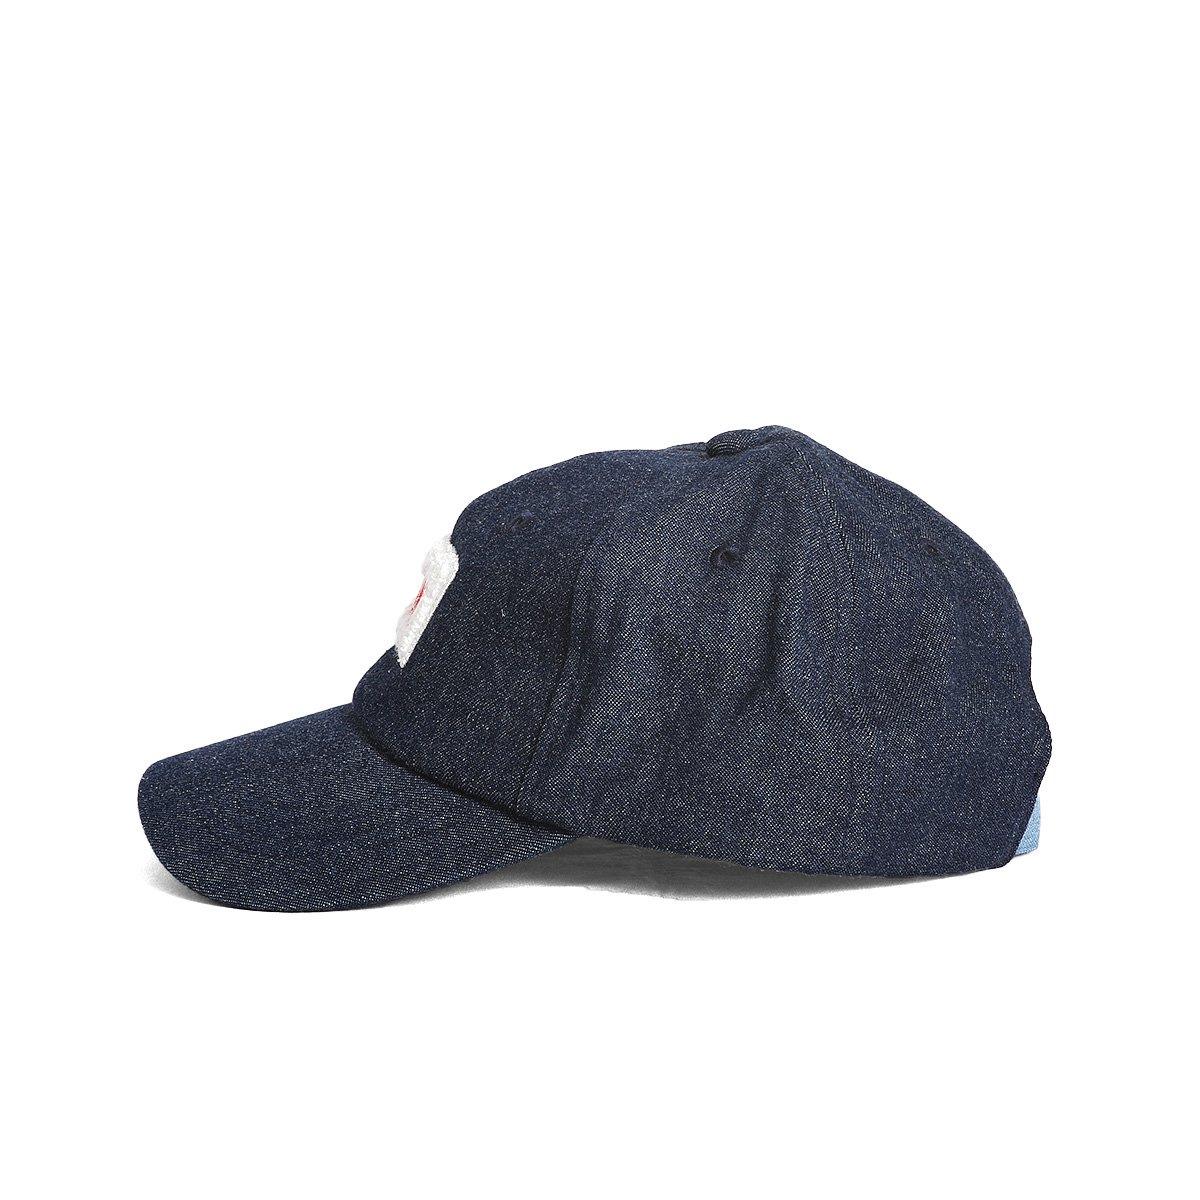 Kids Weather Cap 詳細画像4